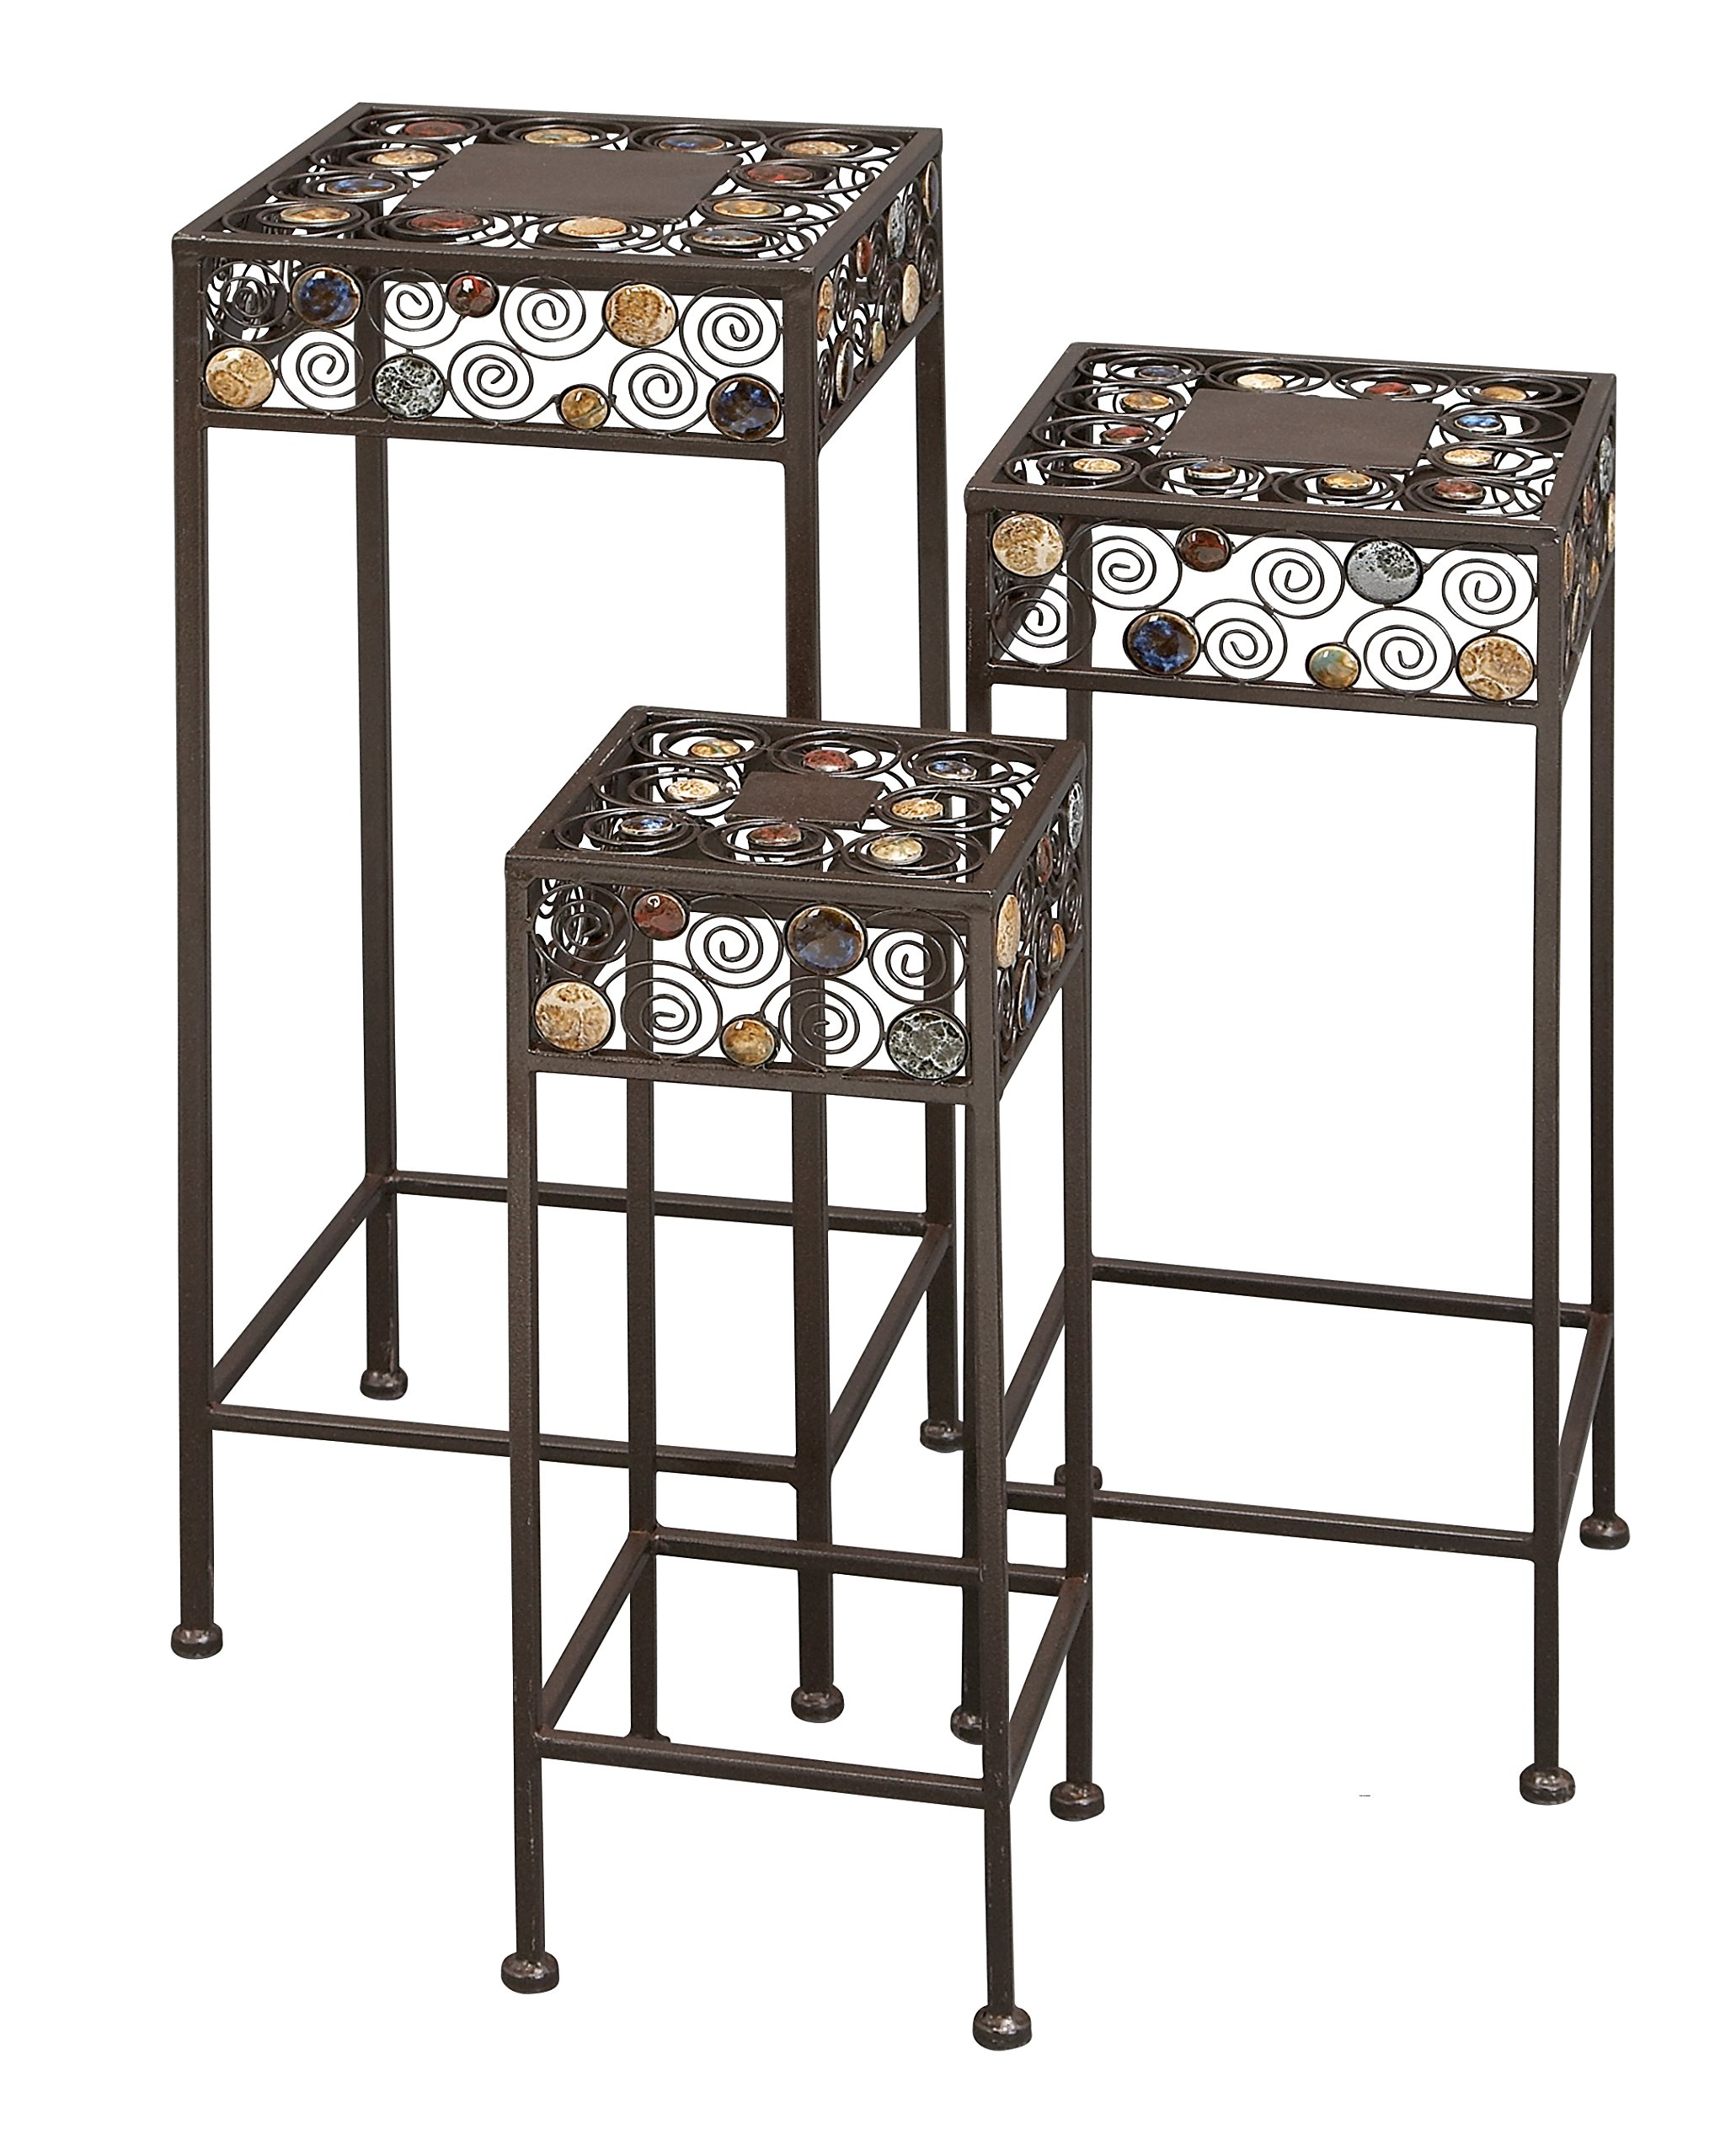 Deco 79 Metal/Ceramic Plant Stand 12-Inch, 23.5-Inch, 29-Inch, Set of 3 by Deco 79